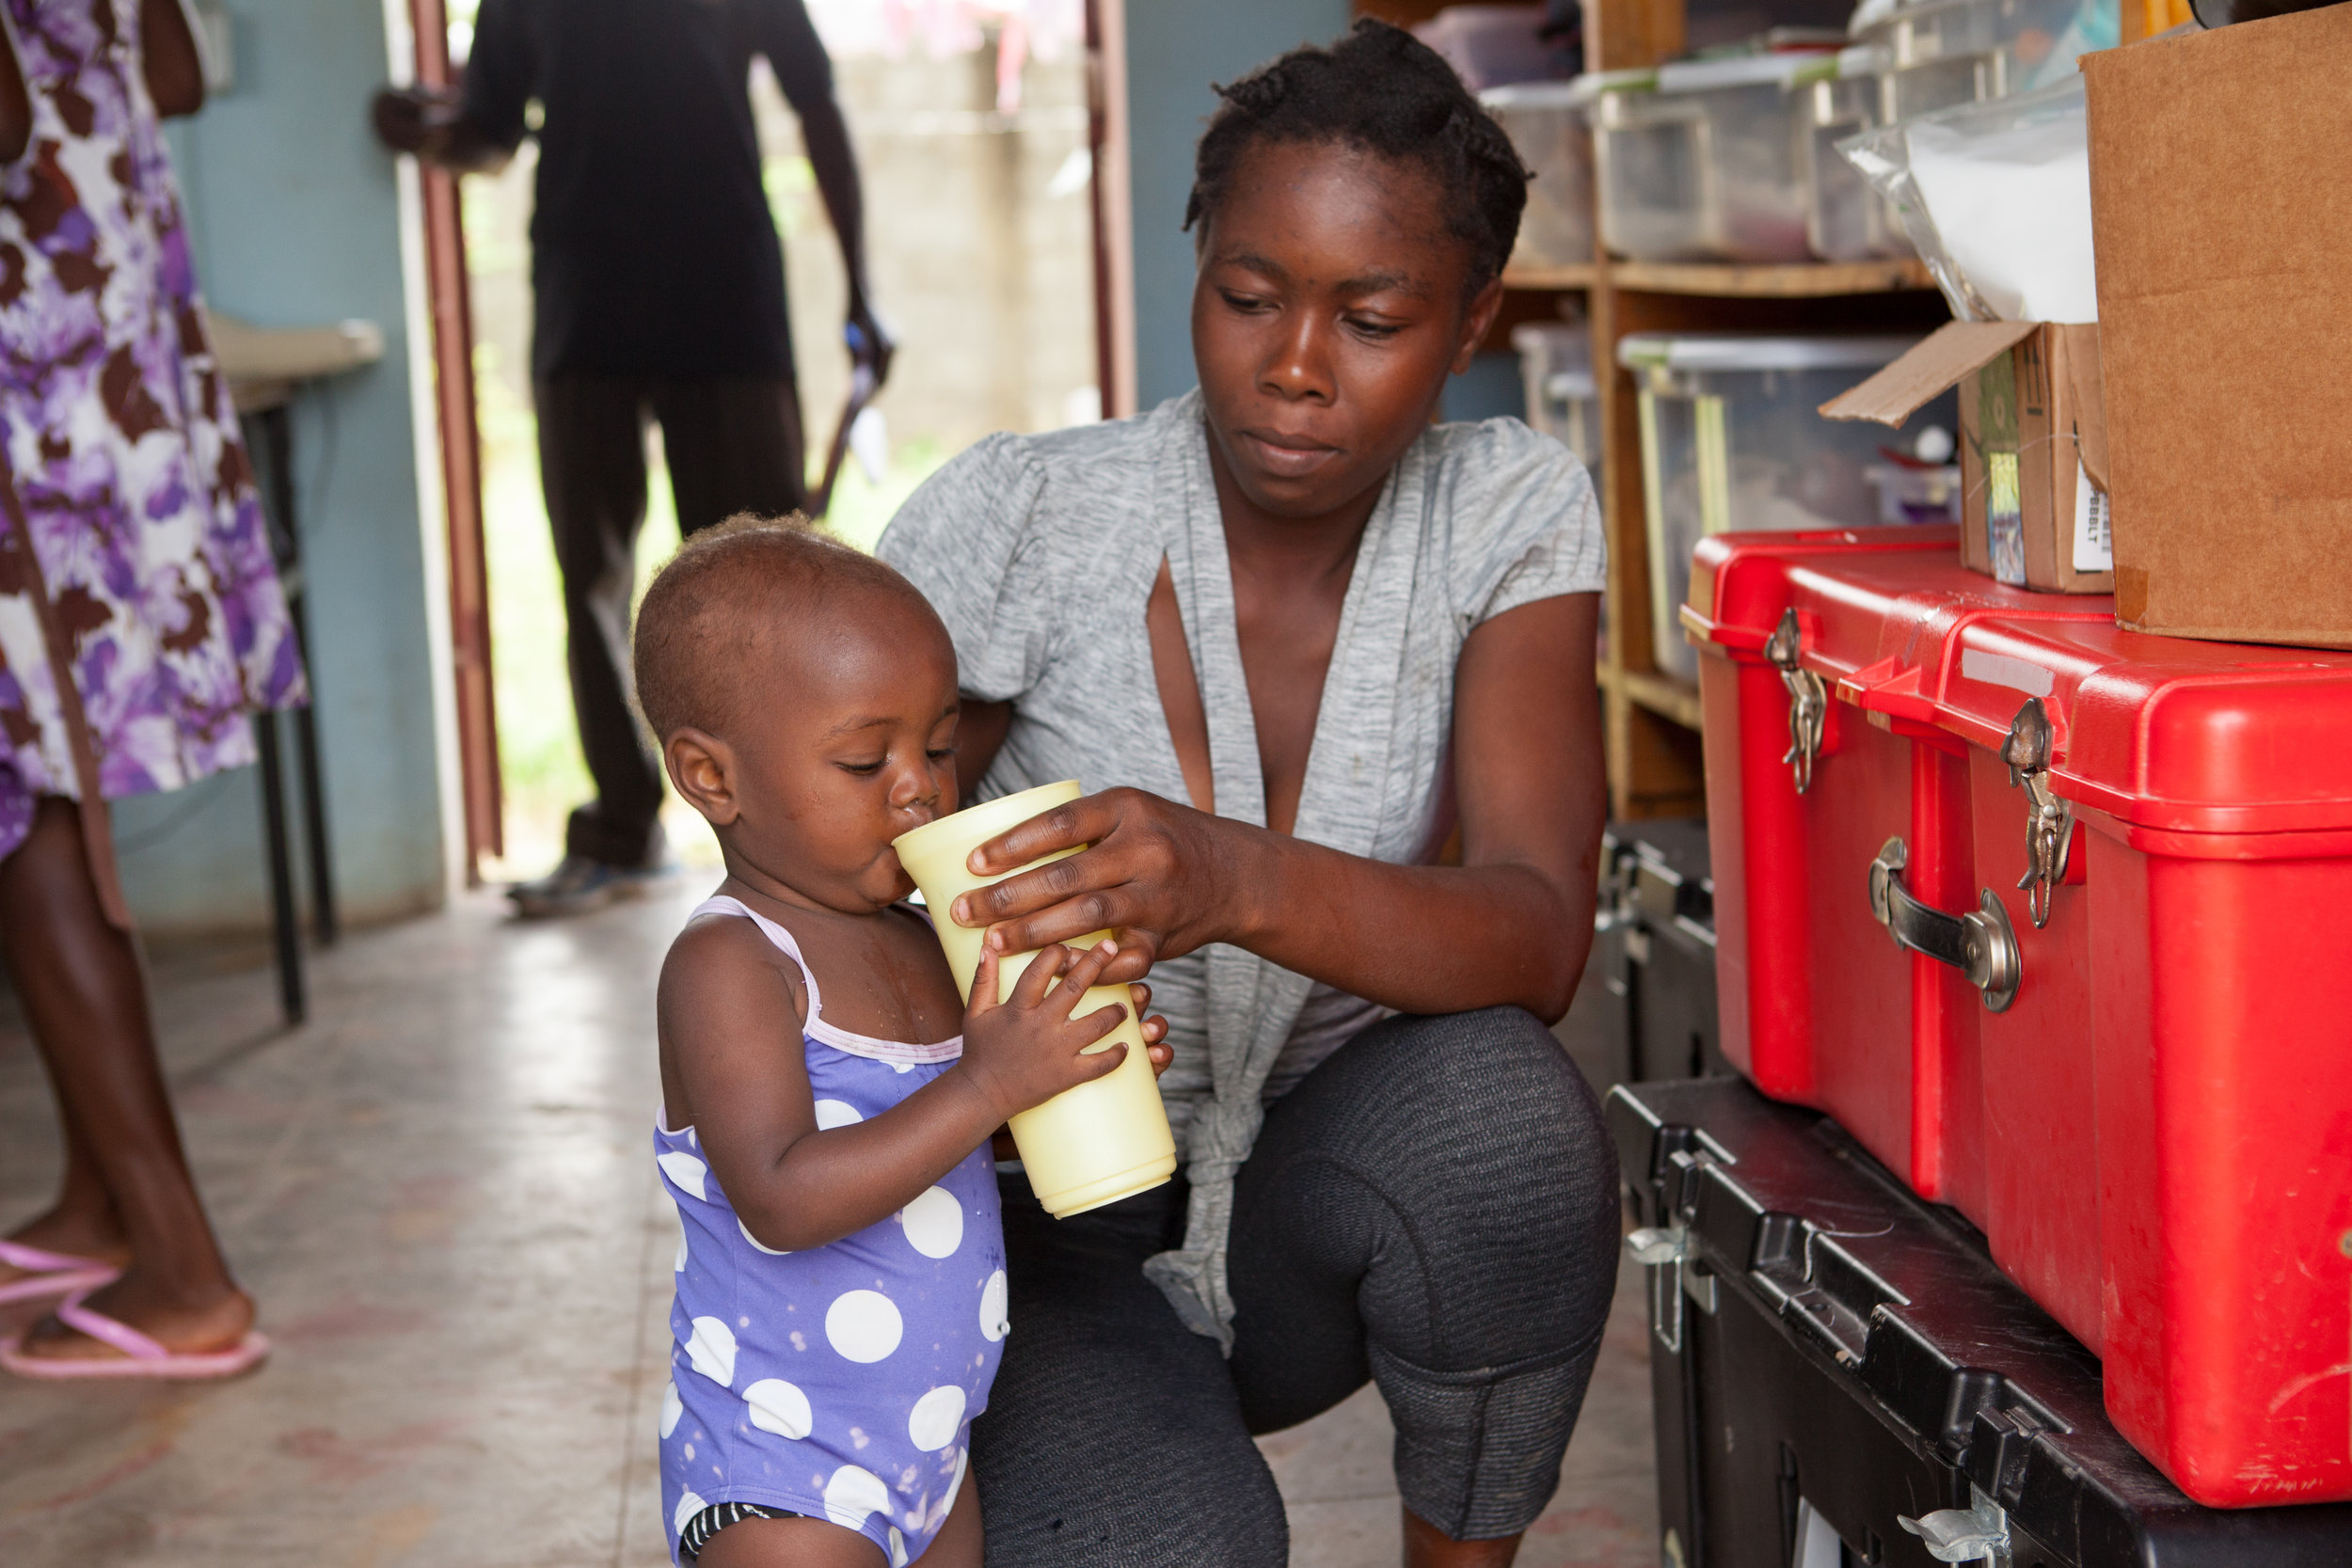 7. Leah H. - I support Second Mile because no child should grow up without a mother just because she lacked access to basic maternal health care.